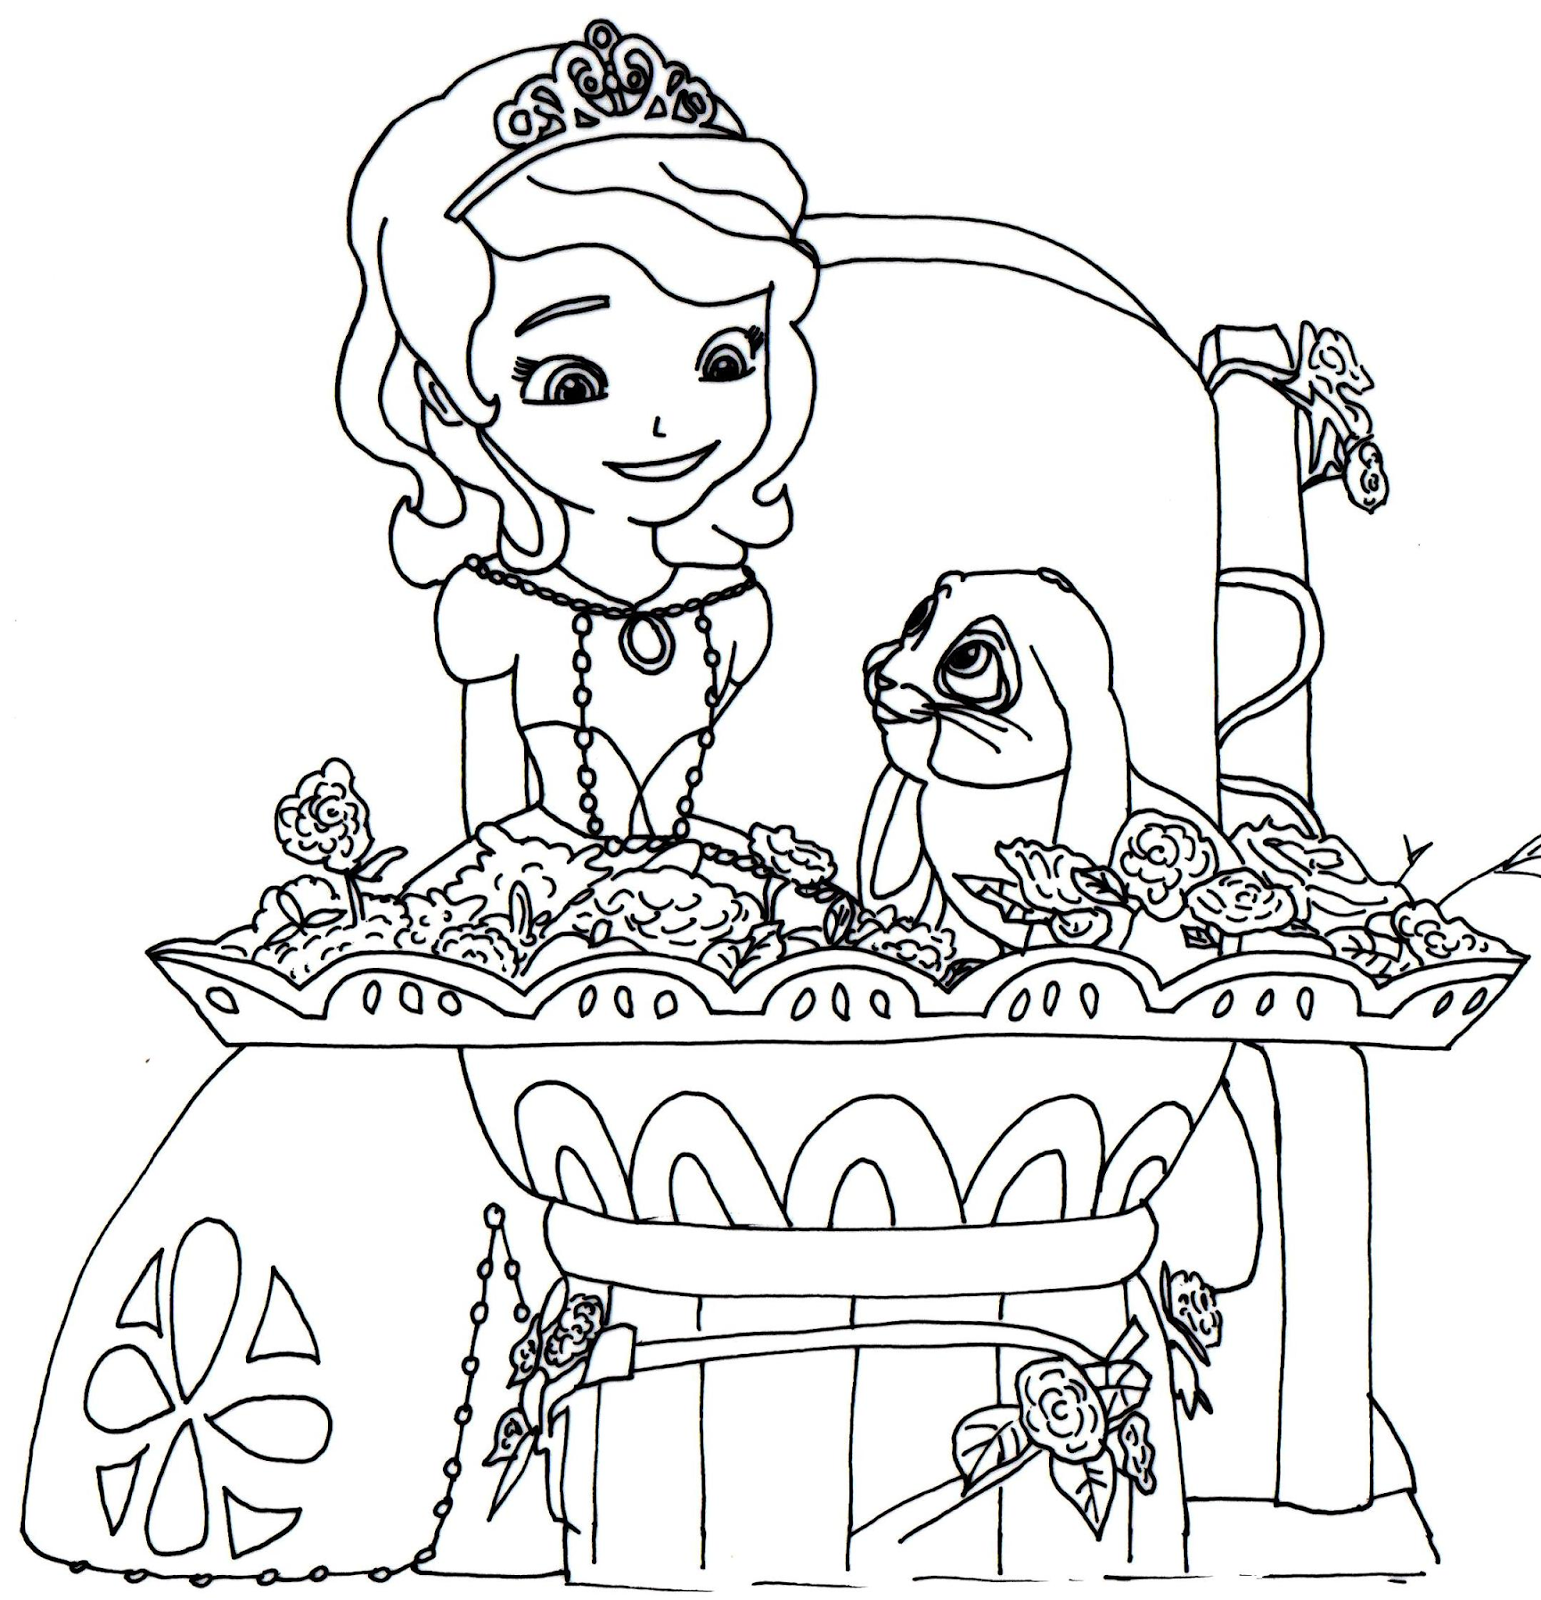 princess sofia coloring page - Google-søgning | Coloring Pages ...